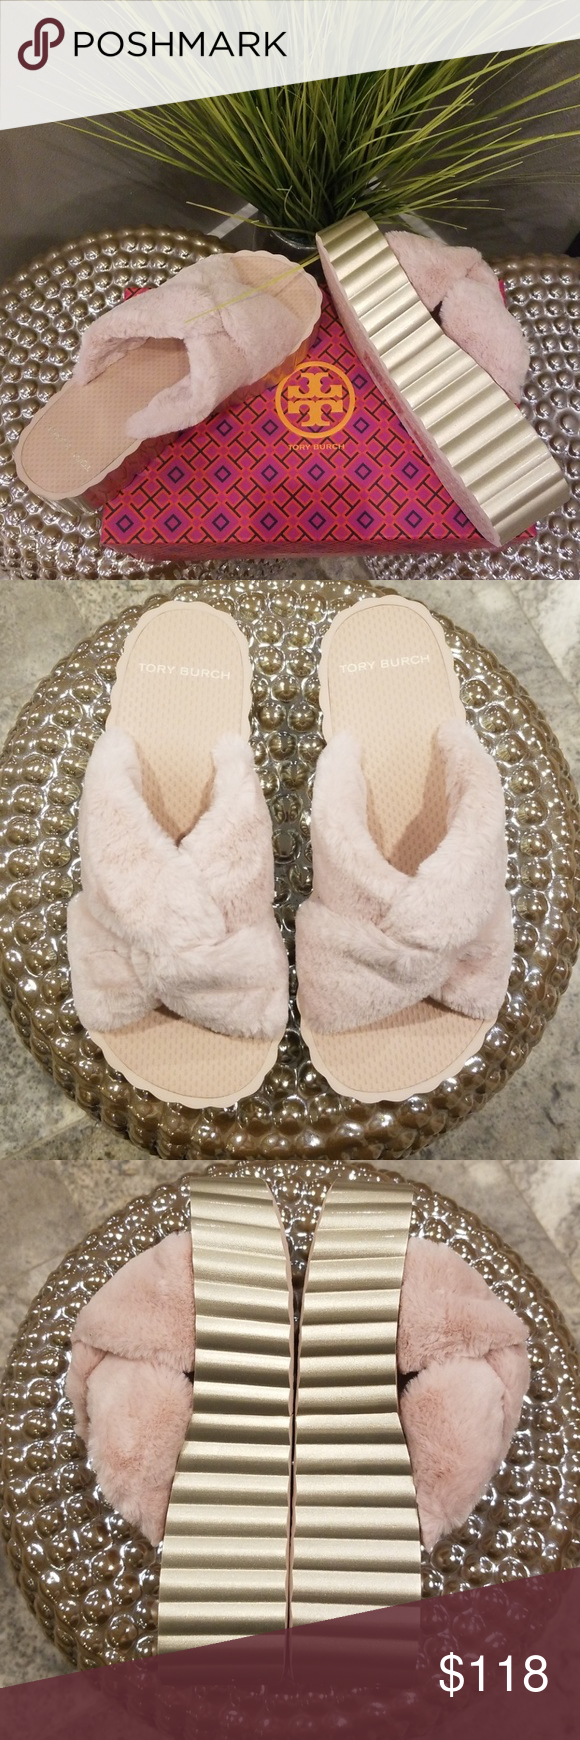 a0a786b1b TORY BURCH SCALLOP WEDGE SLIDES These Cozy  amp  Comfy Tory Burch Wedge  Slides are definitely